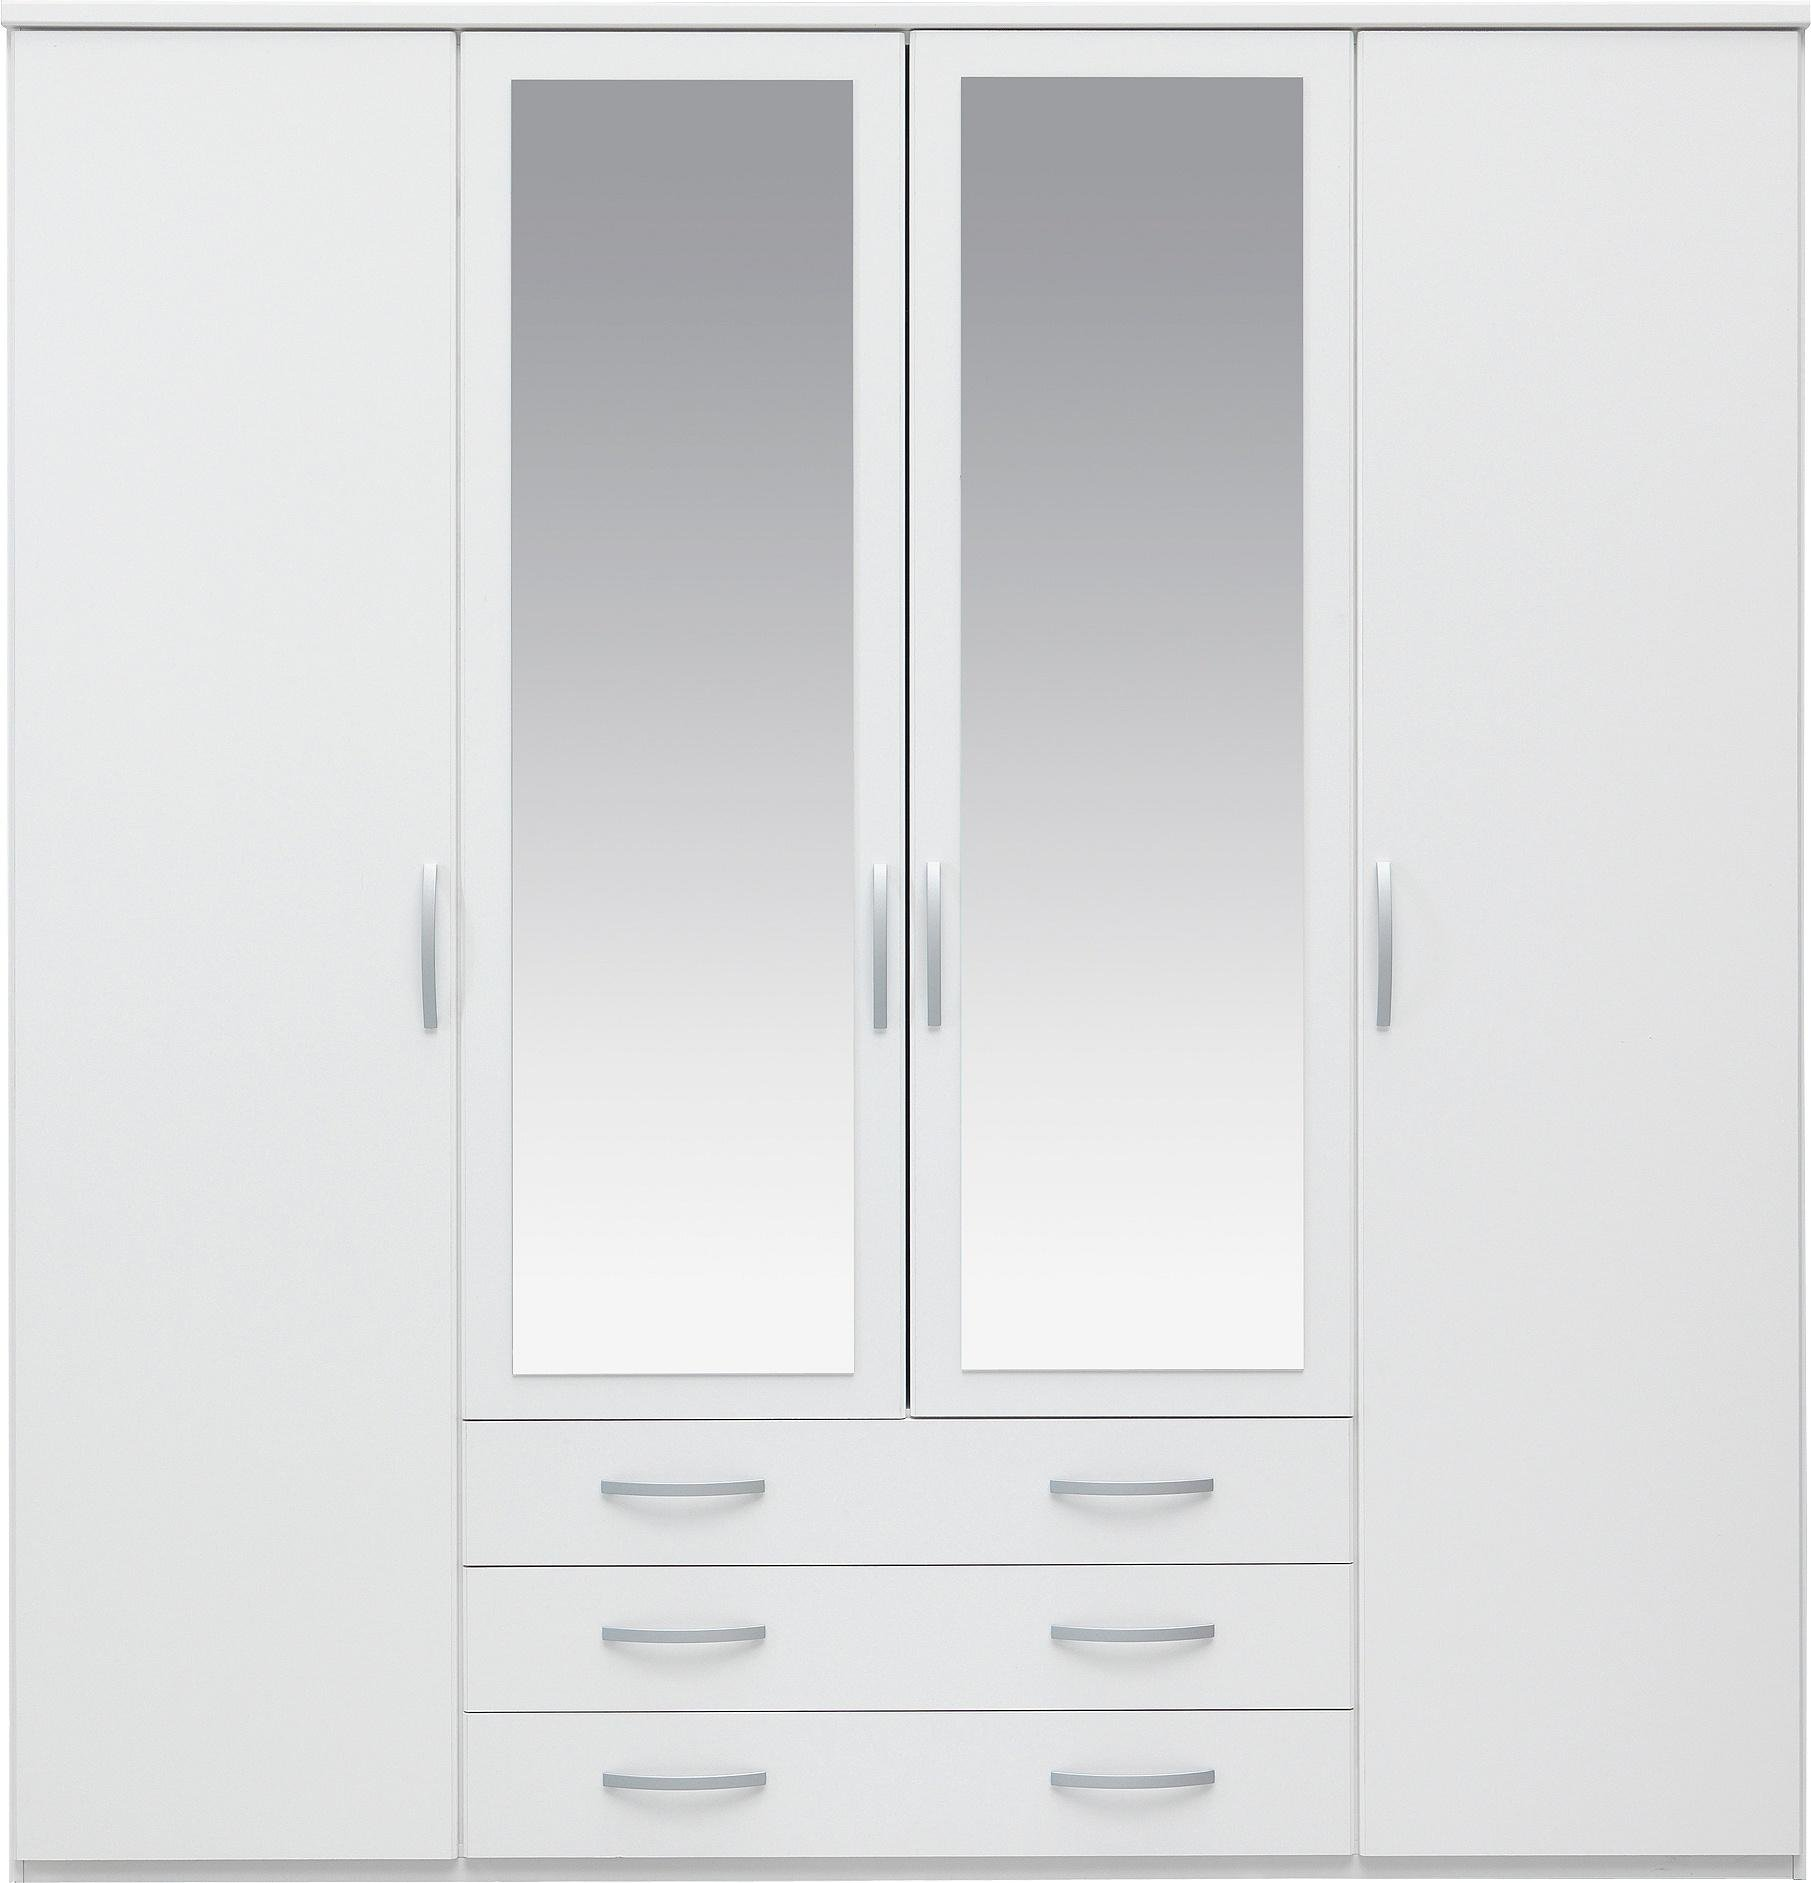 white wardrobes collection hallingford 4dr 3drw mirrored wardrobe - white PENKHPN